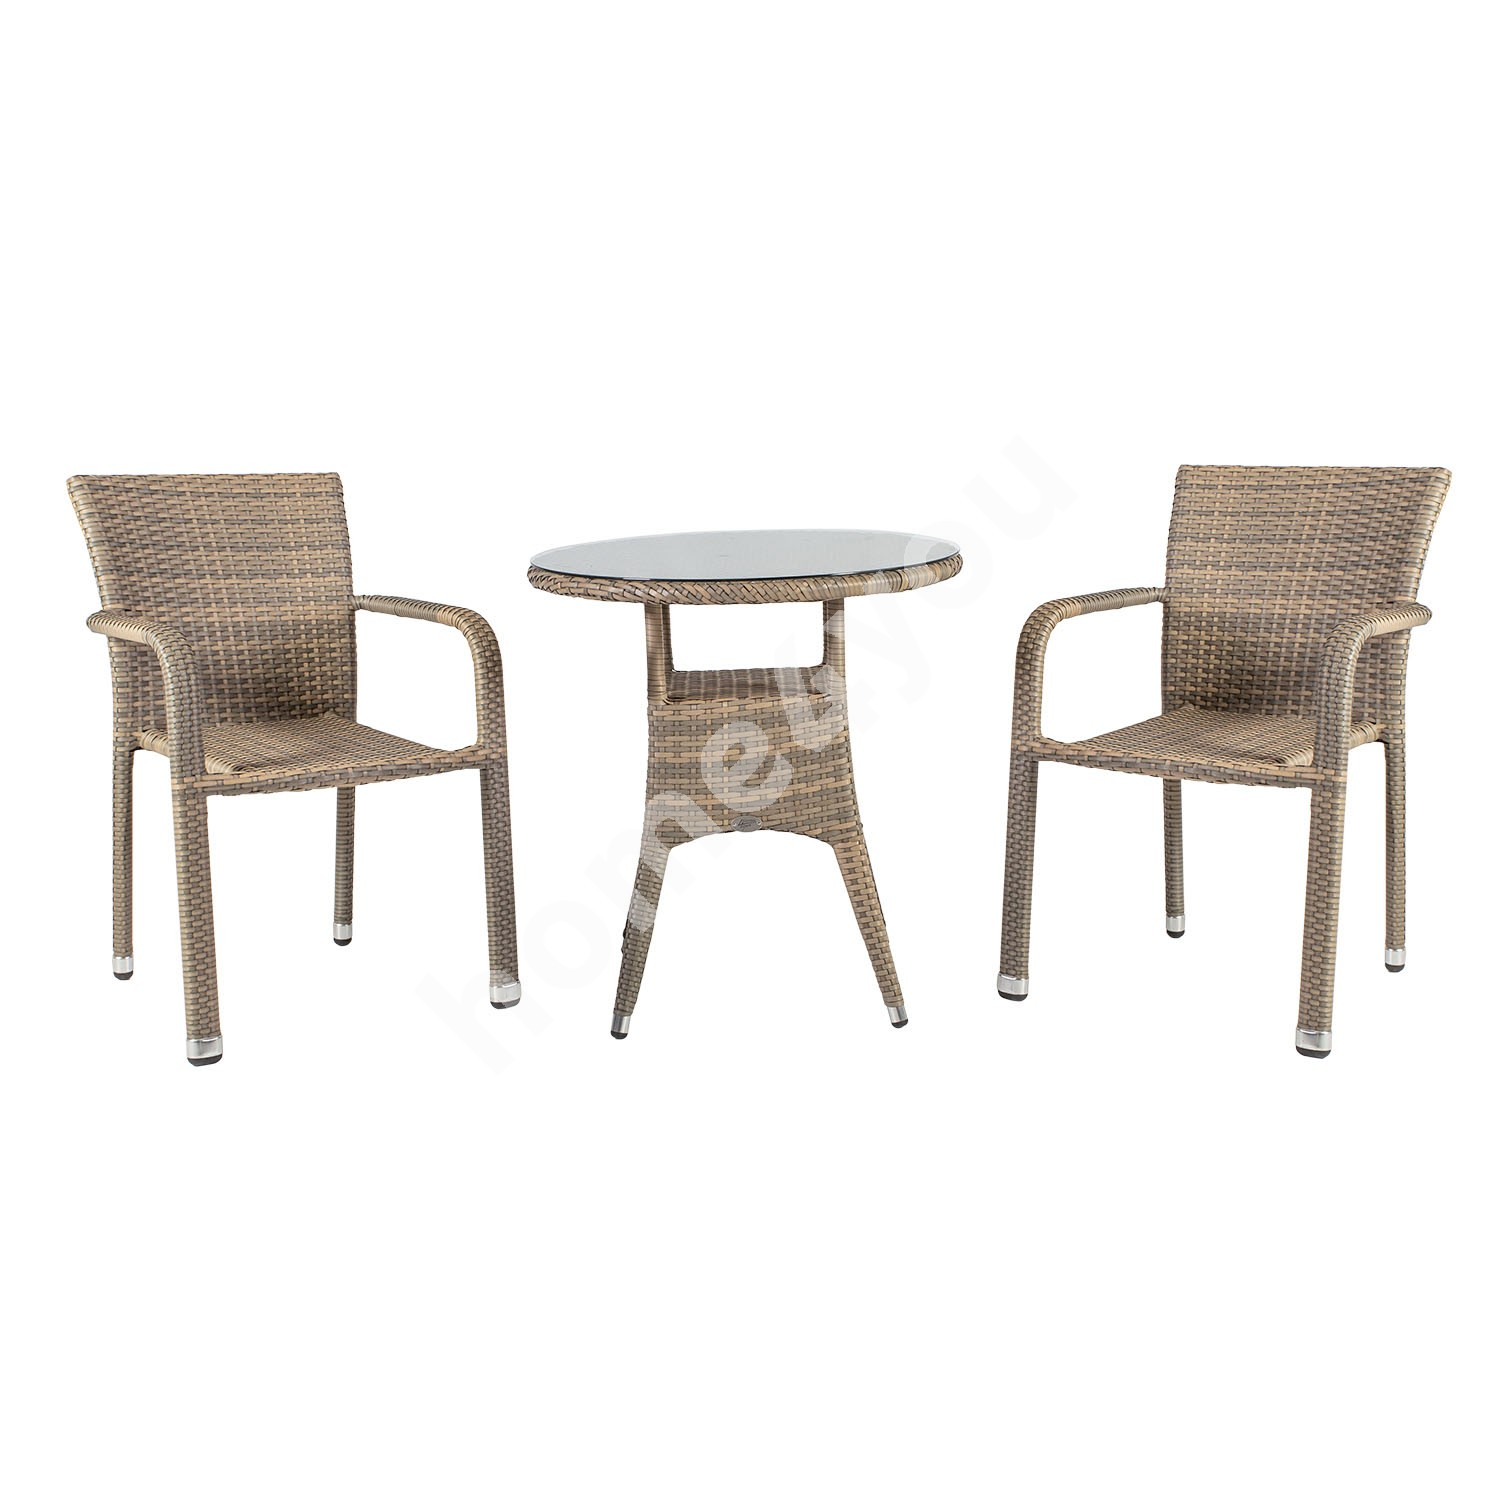 Garden furniture set LARACHE table and 2 chairs (2102) table top: transparent glass, aluminum frame with plastic wicker,